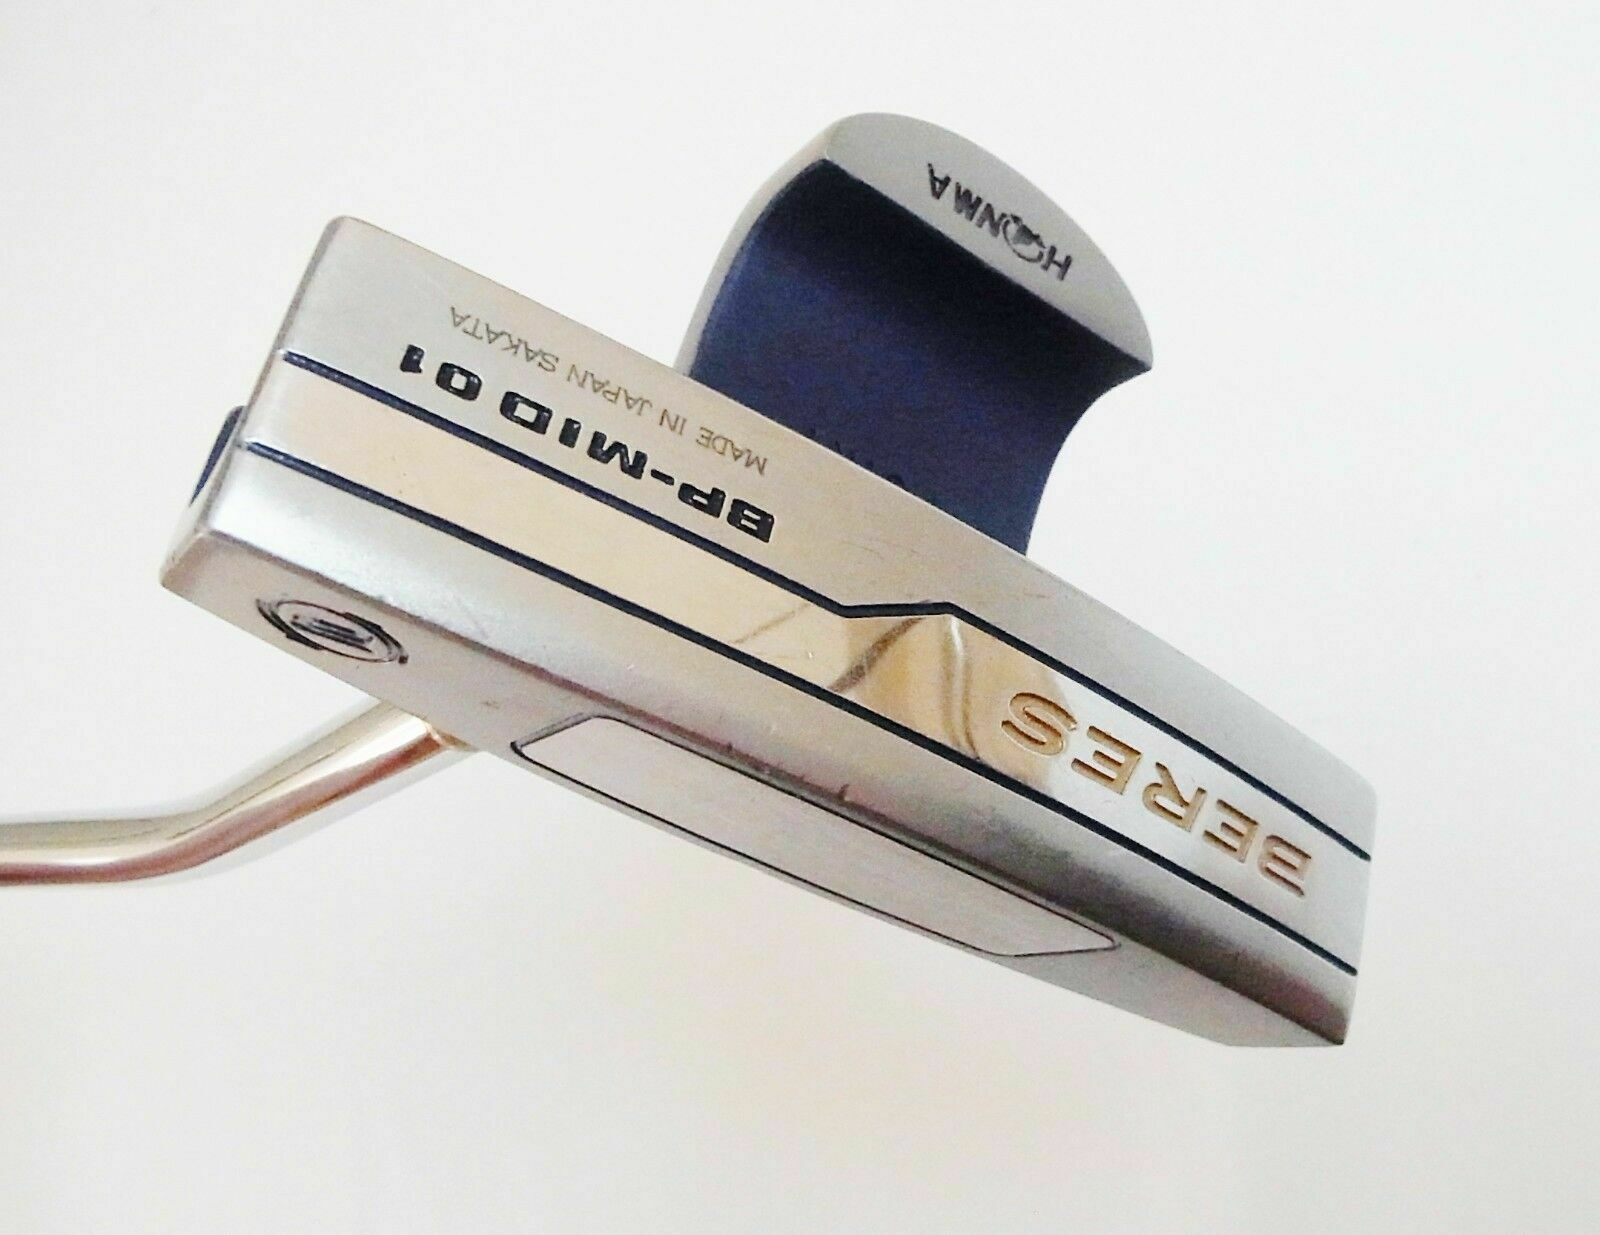 HONMA BERES BP-MID 01 BLUE 34INCH PUTTER GOLF CLUBS 6197 BERES